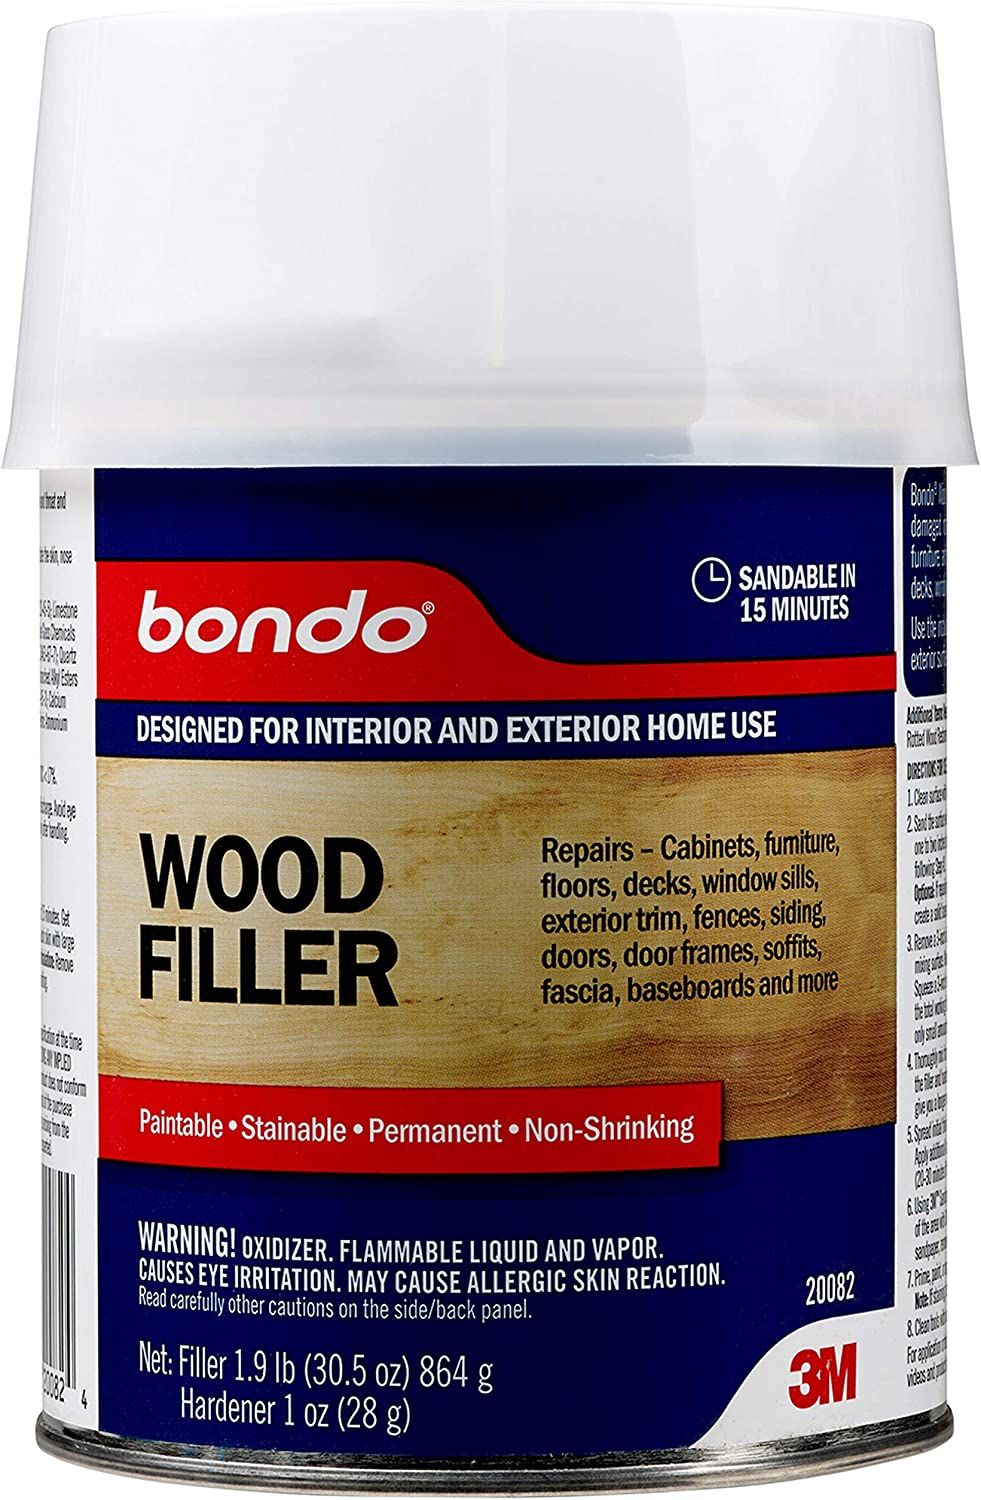 Bondo Wood Filler, Repairs - Sandable in 15 min - For Cabinets, Furniture, Floors, Decks, Window Sills, Exterior Trim, Fences, Siding, Doors, Baseboards and More, 1.9 lbs. with 1 oz Hardener